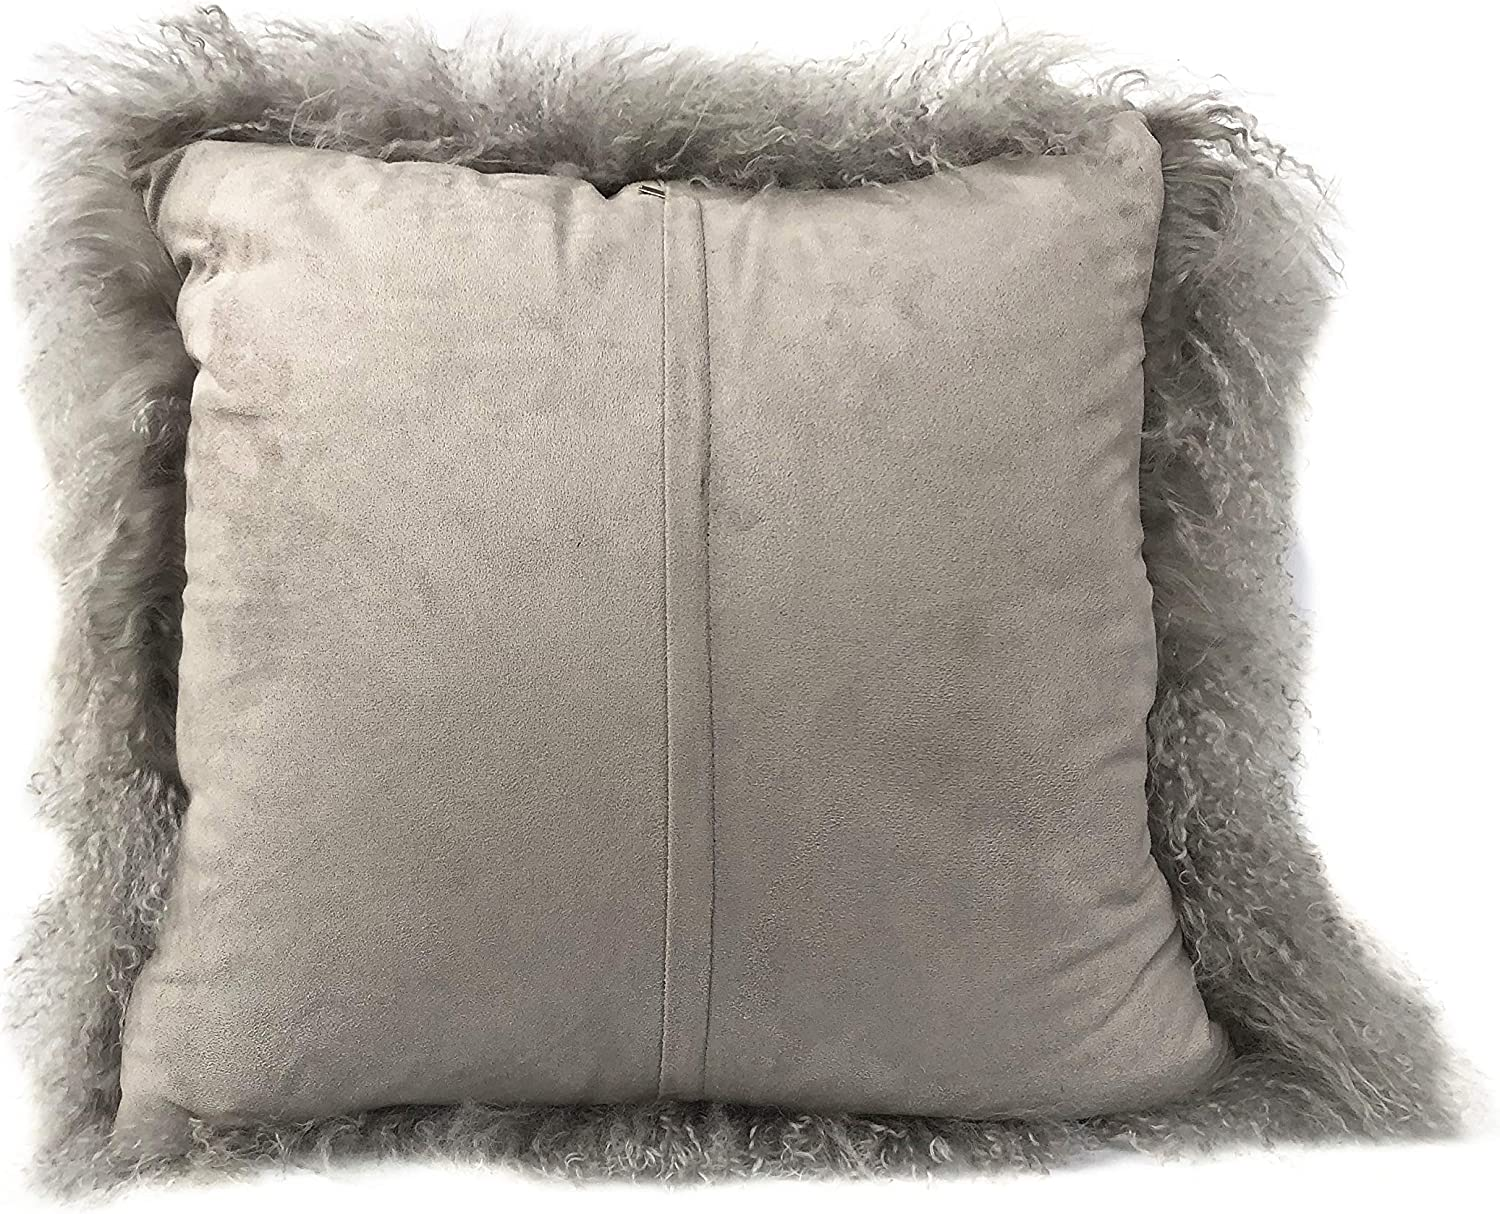 100/% Real Mongolian Lamb Fur Curly Wool Rectangle Throw Pillow Cushion Decorative Pillow for Living Room Bedroom Car,Pillow Insert Included,12x20in,Dark Gray